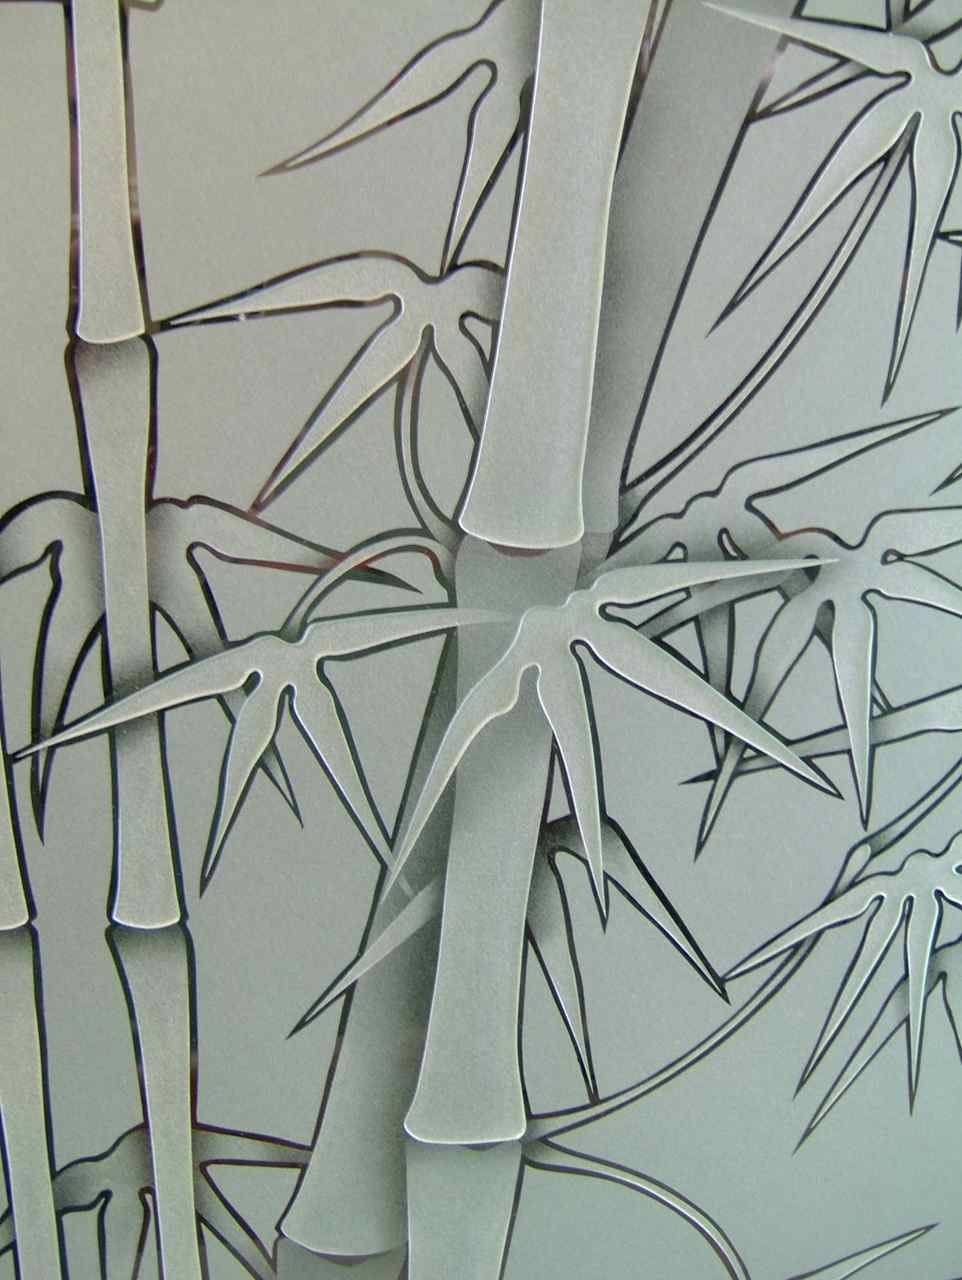 Etched glass doors privacy glass door inserts bamboo pictures to pin - Bamboo Sandblast Glass